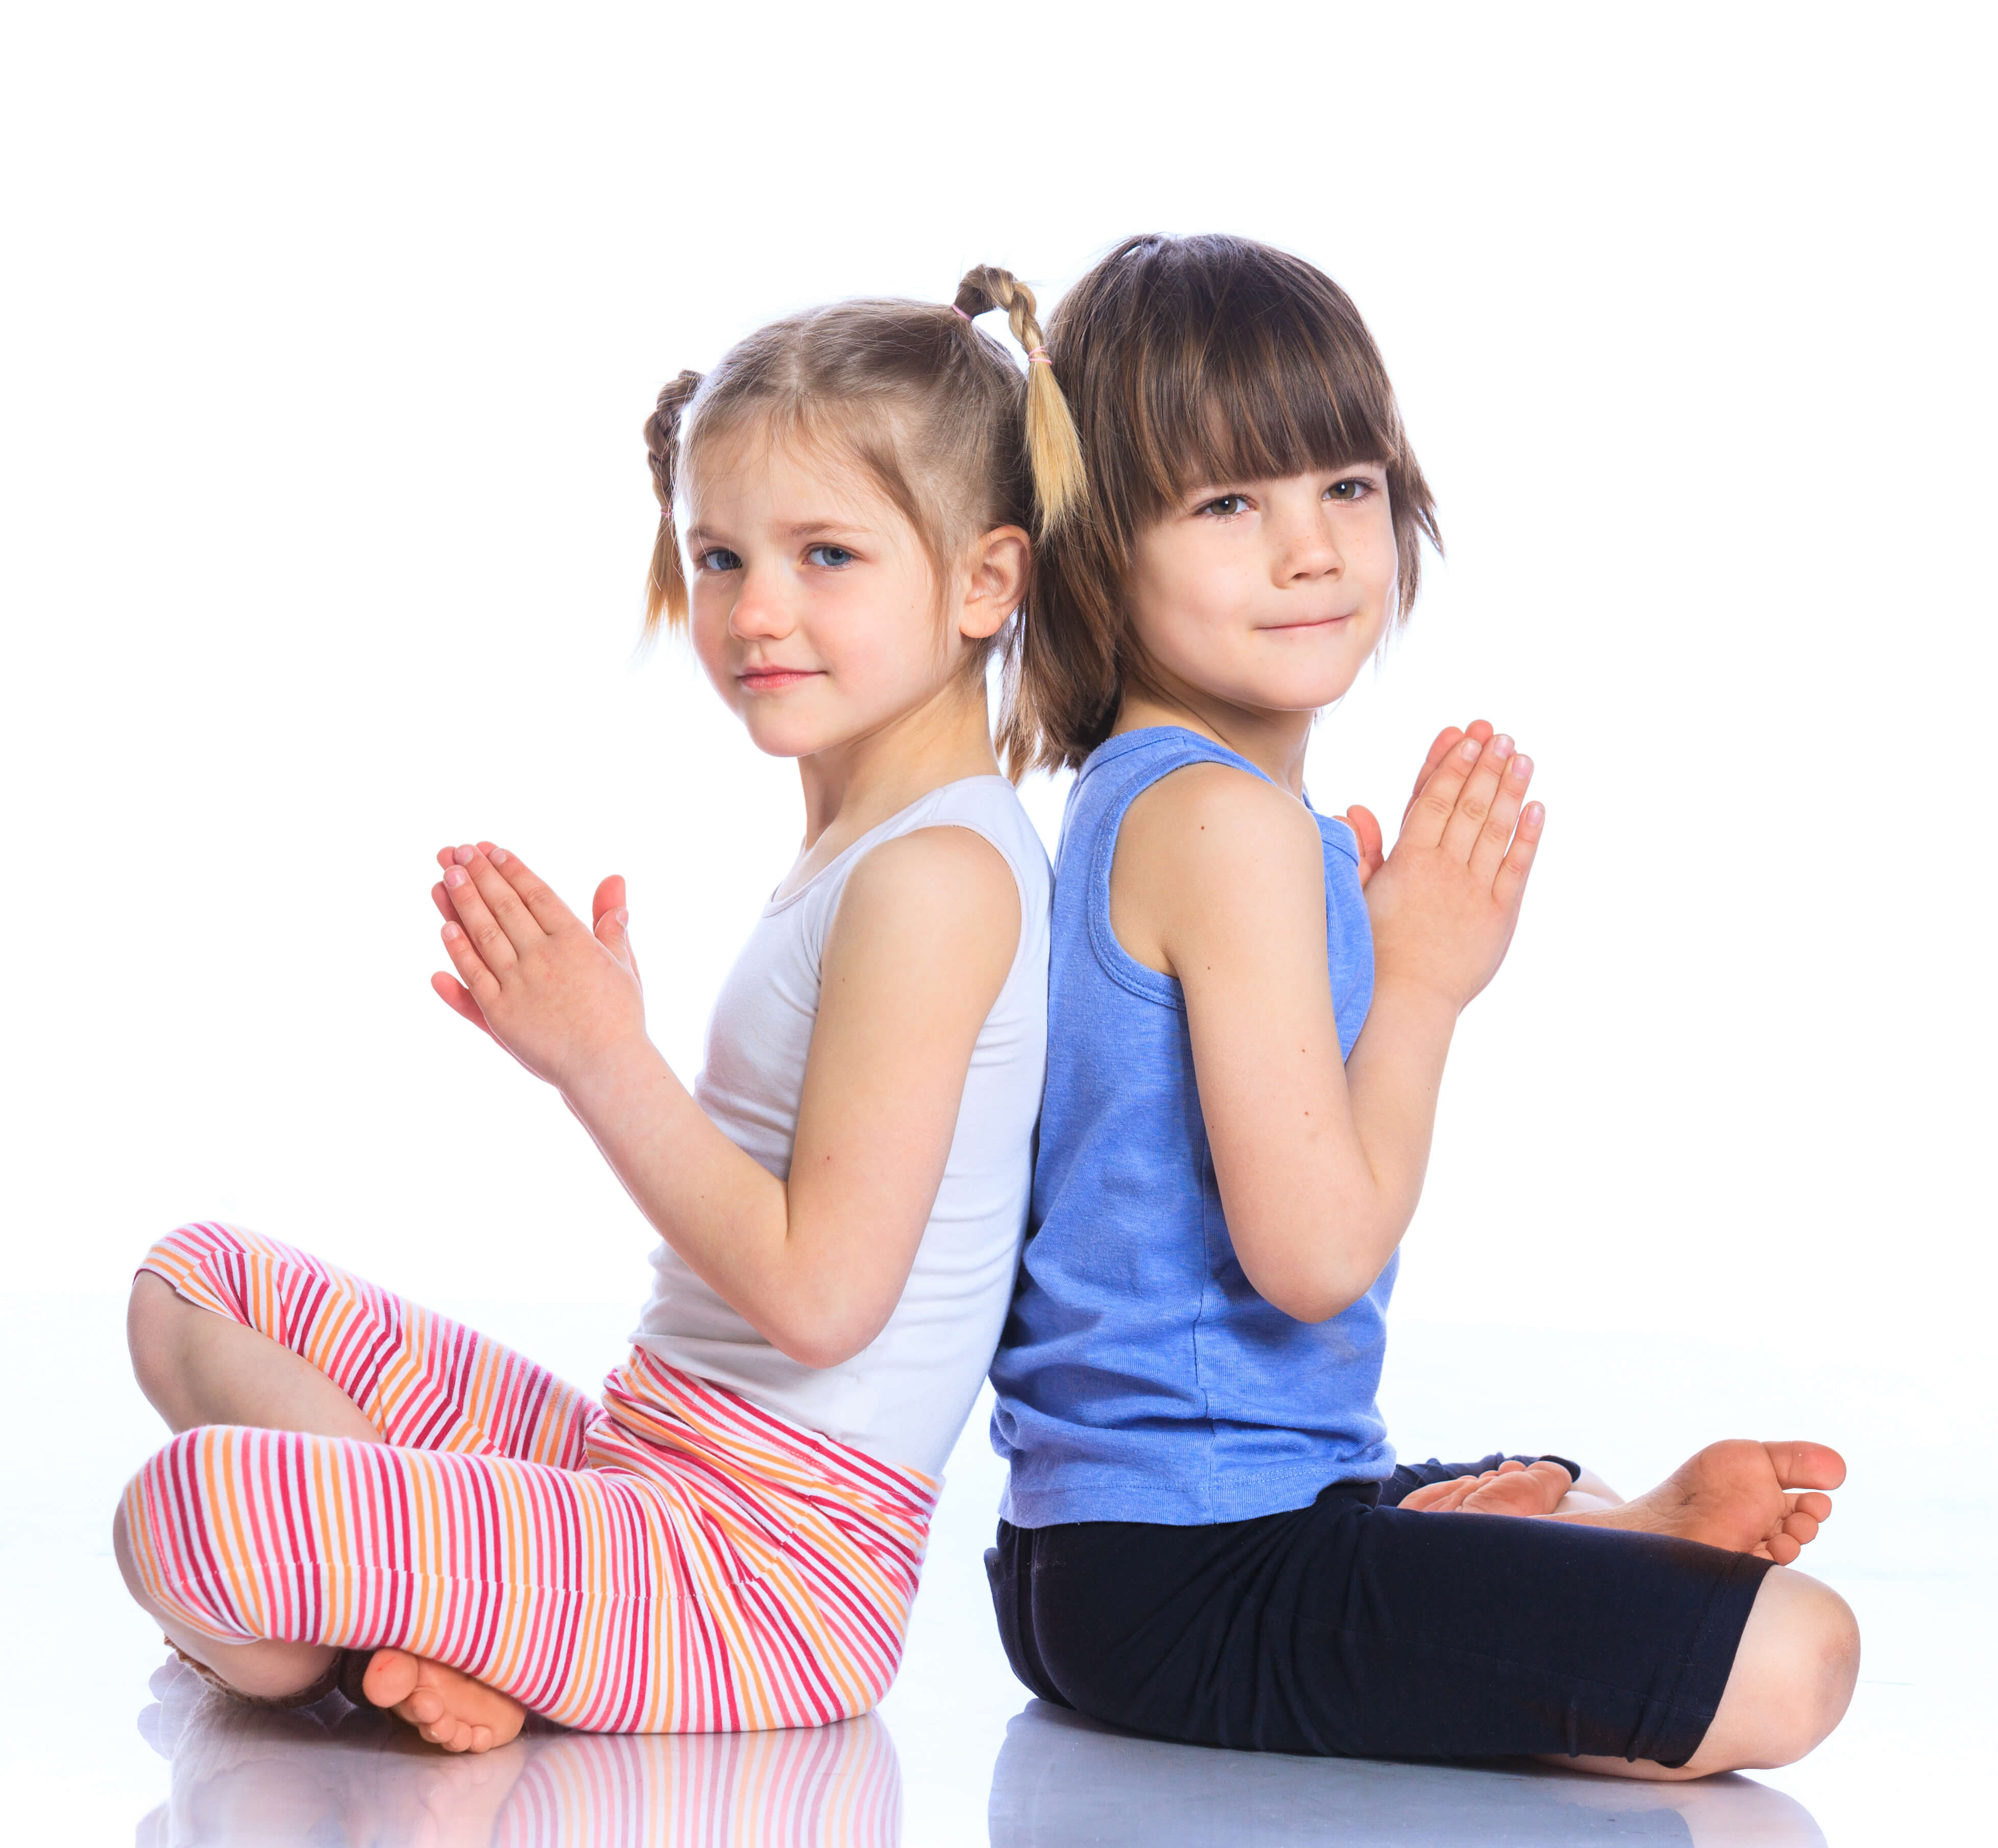 The Top 3 Breathing Exercises For Anxious Kids